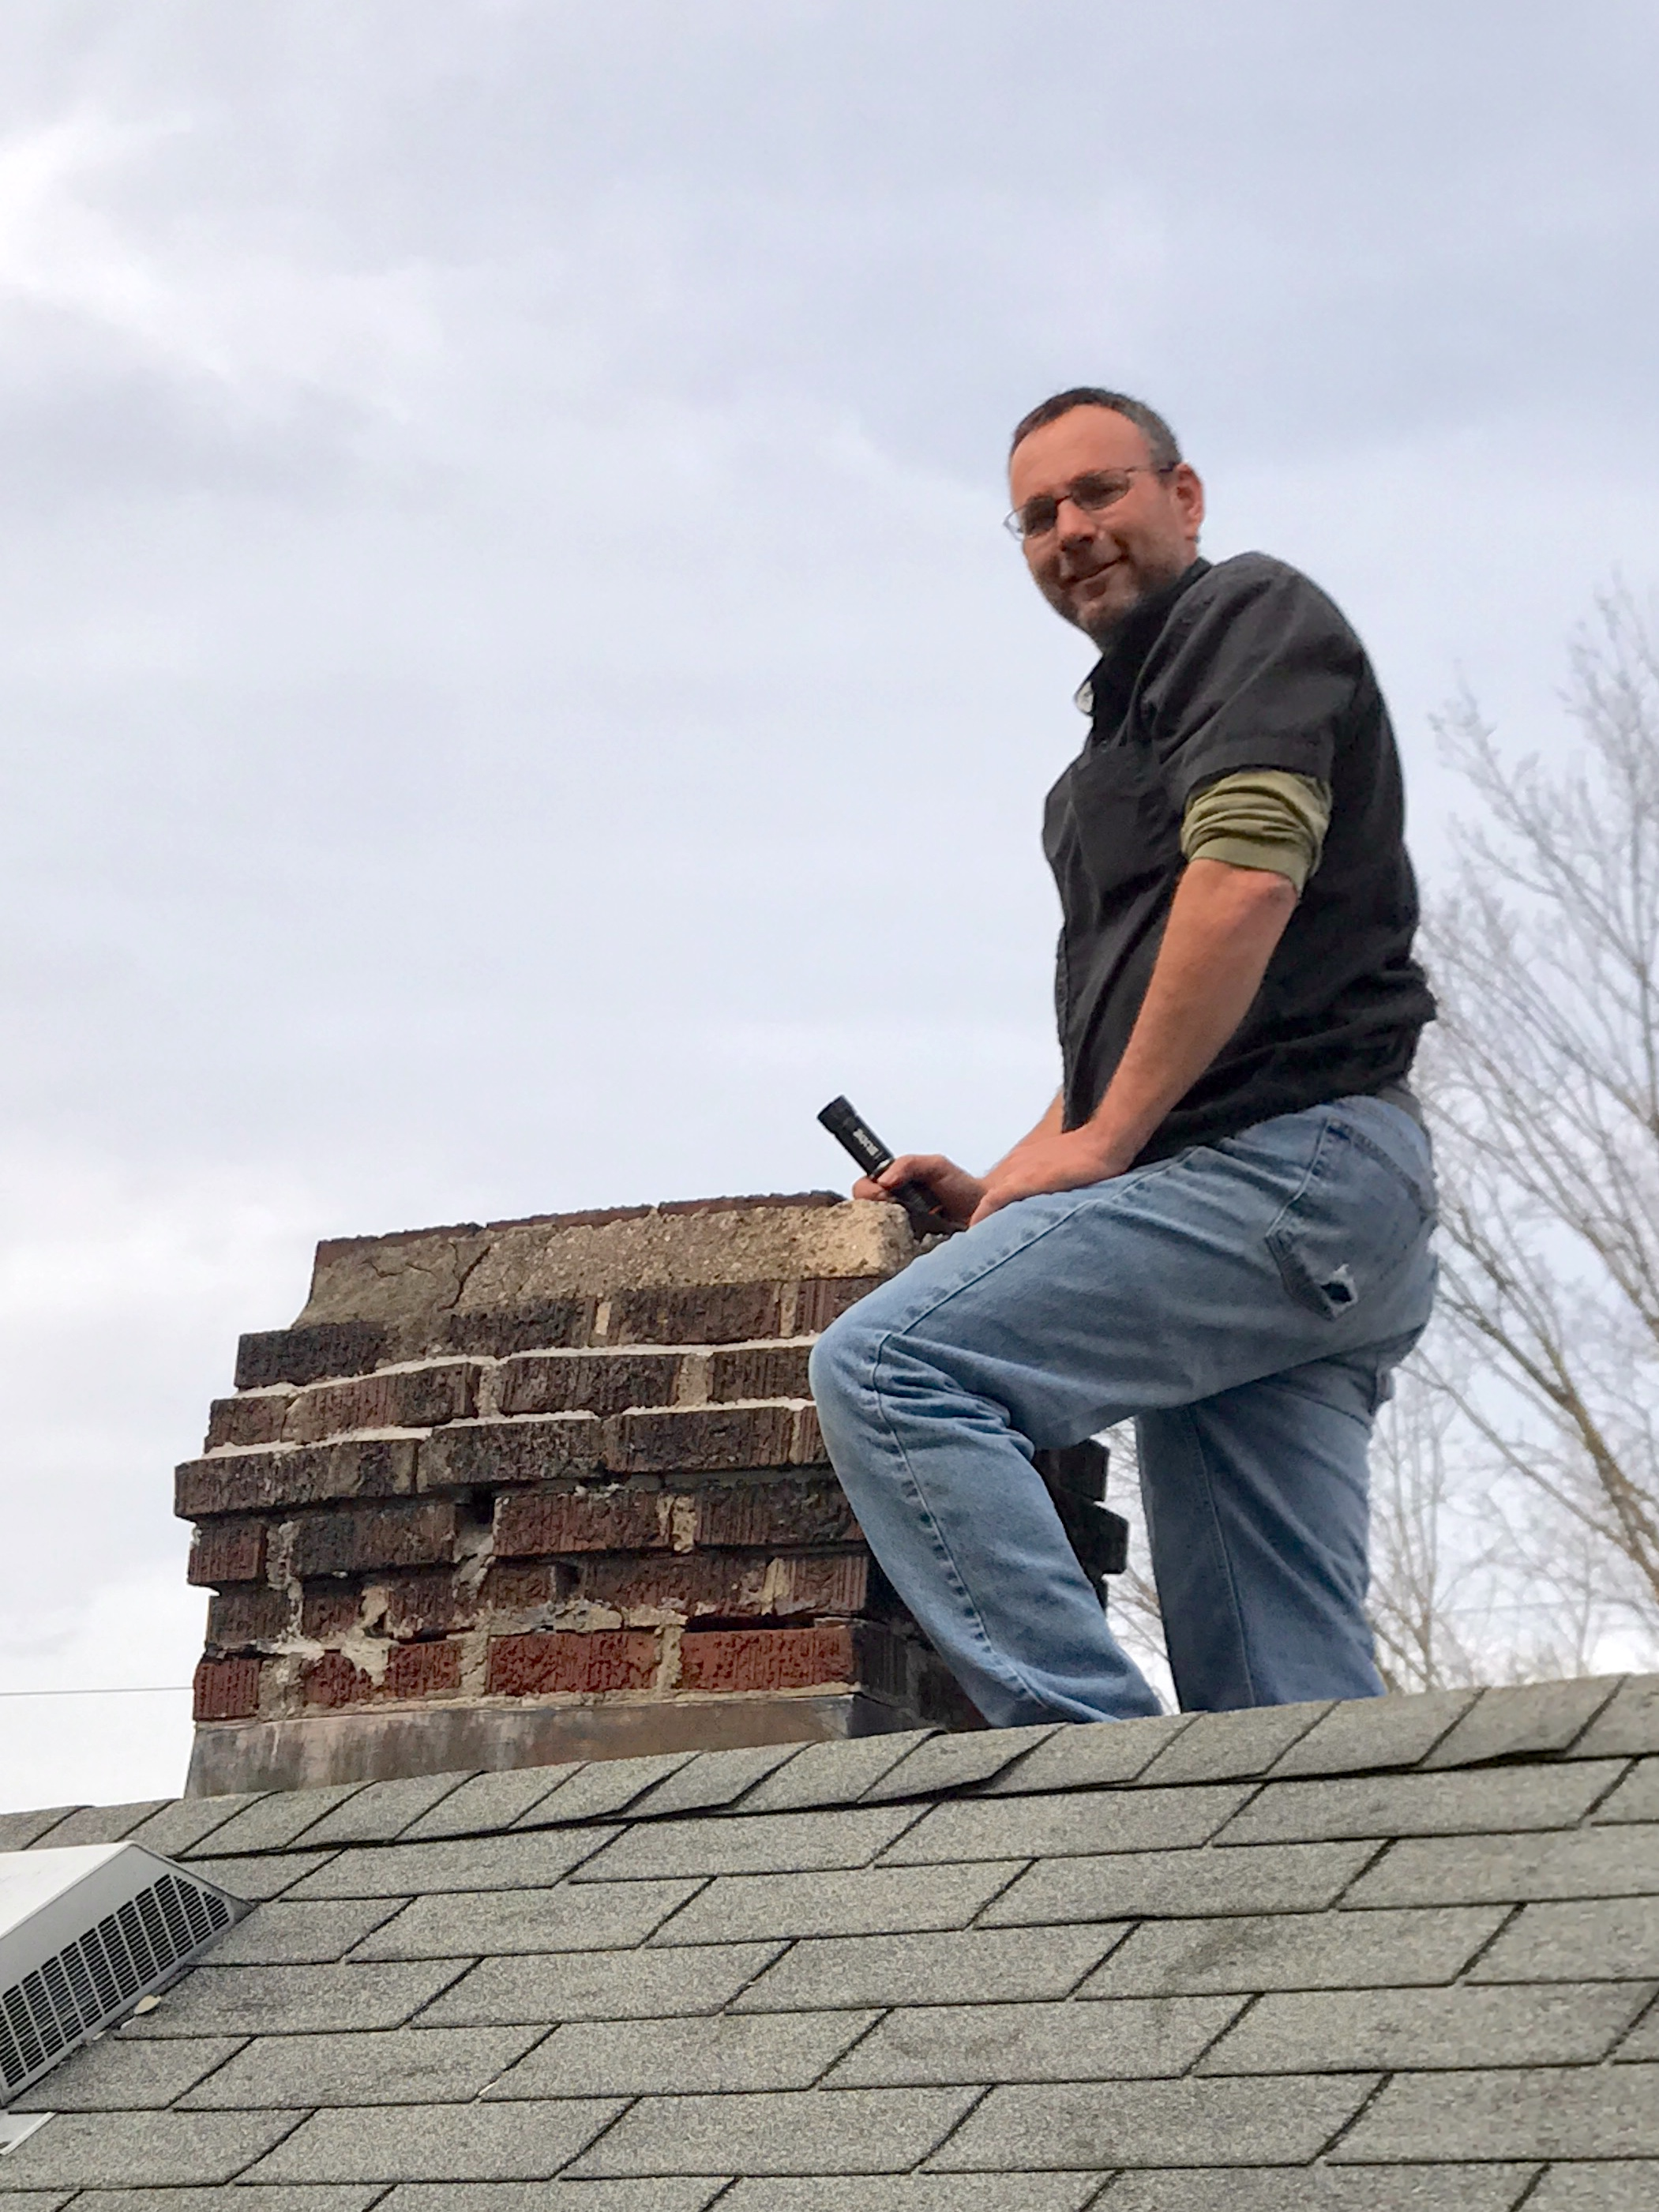 John Lawson of Assured Home Inspections inspecting the chimney and roof of a single-family home in Northern Kentucky